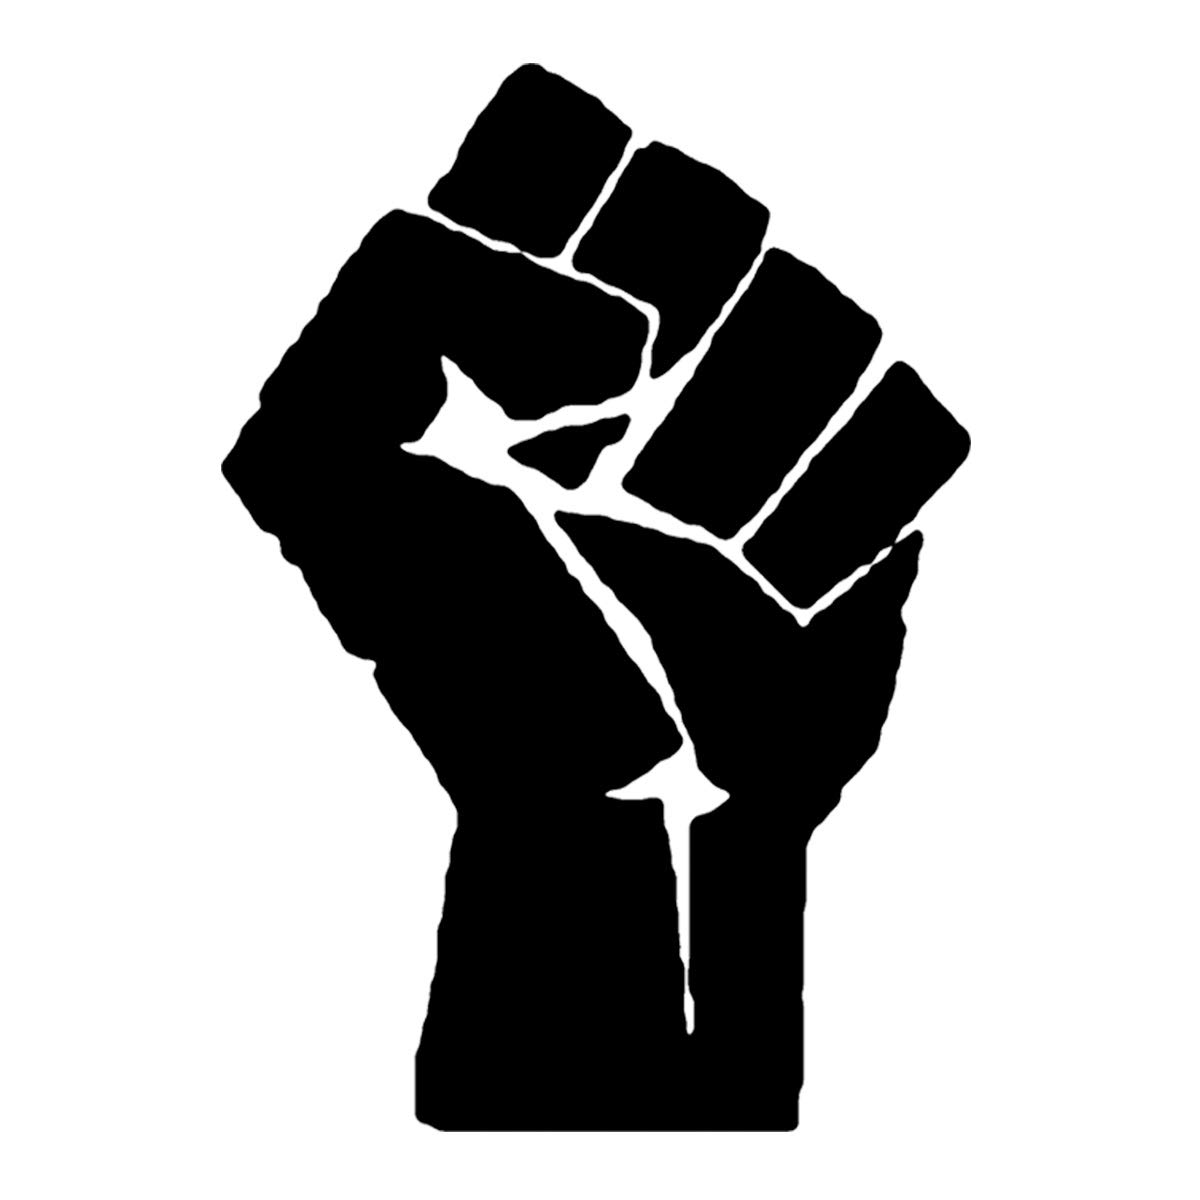 Raised Fist Temporary Tattoos (10 Pack) | Skin Safe | MADE IN THE USA| Removable